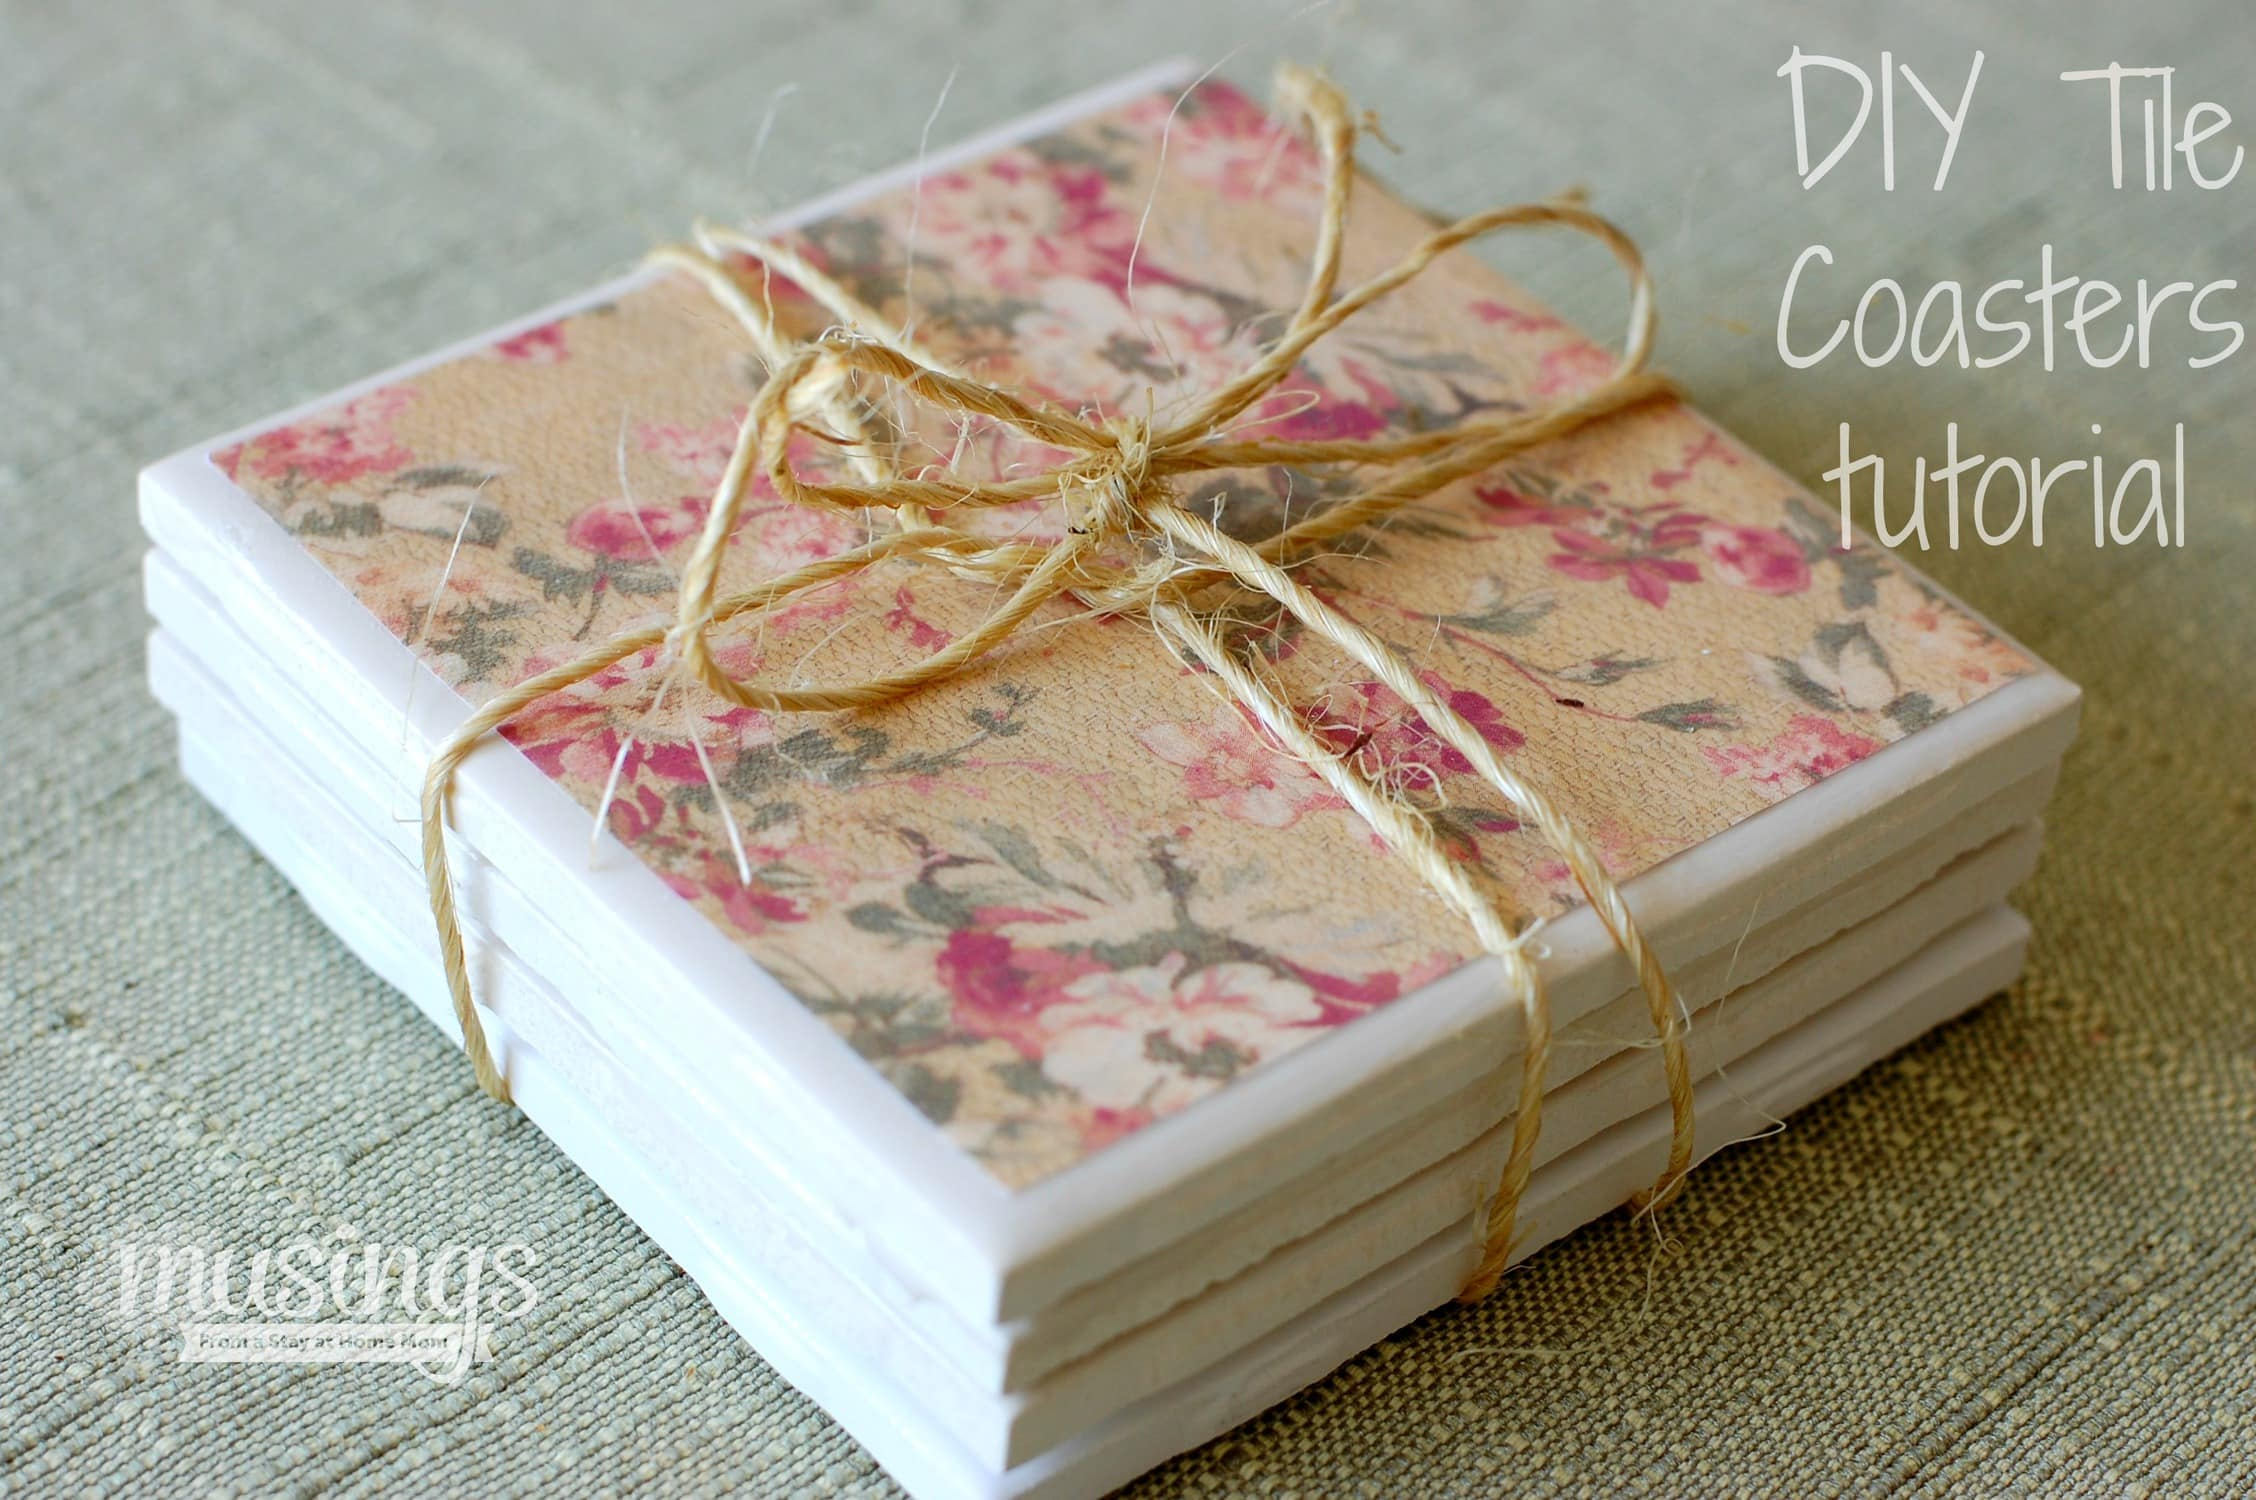 Diy tile coasters tutorial living well mom for Homemade coaster ideas